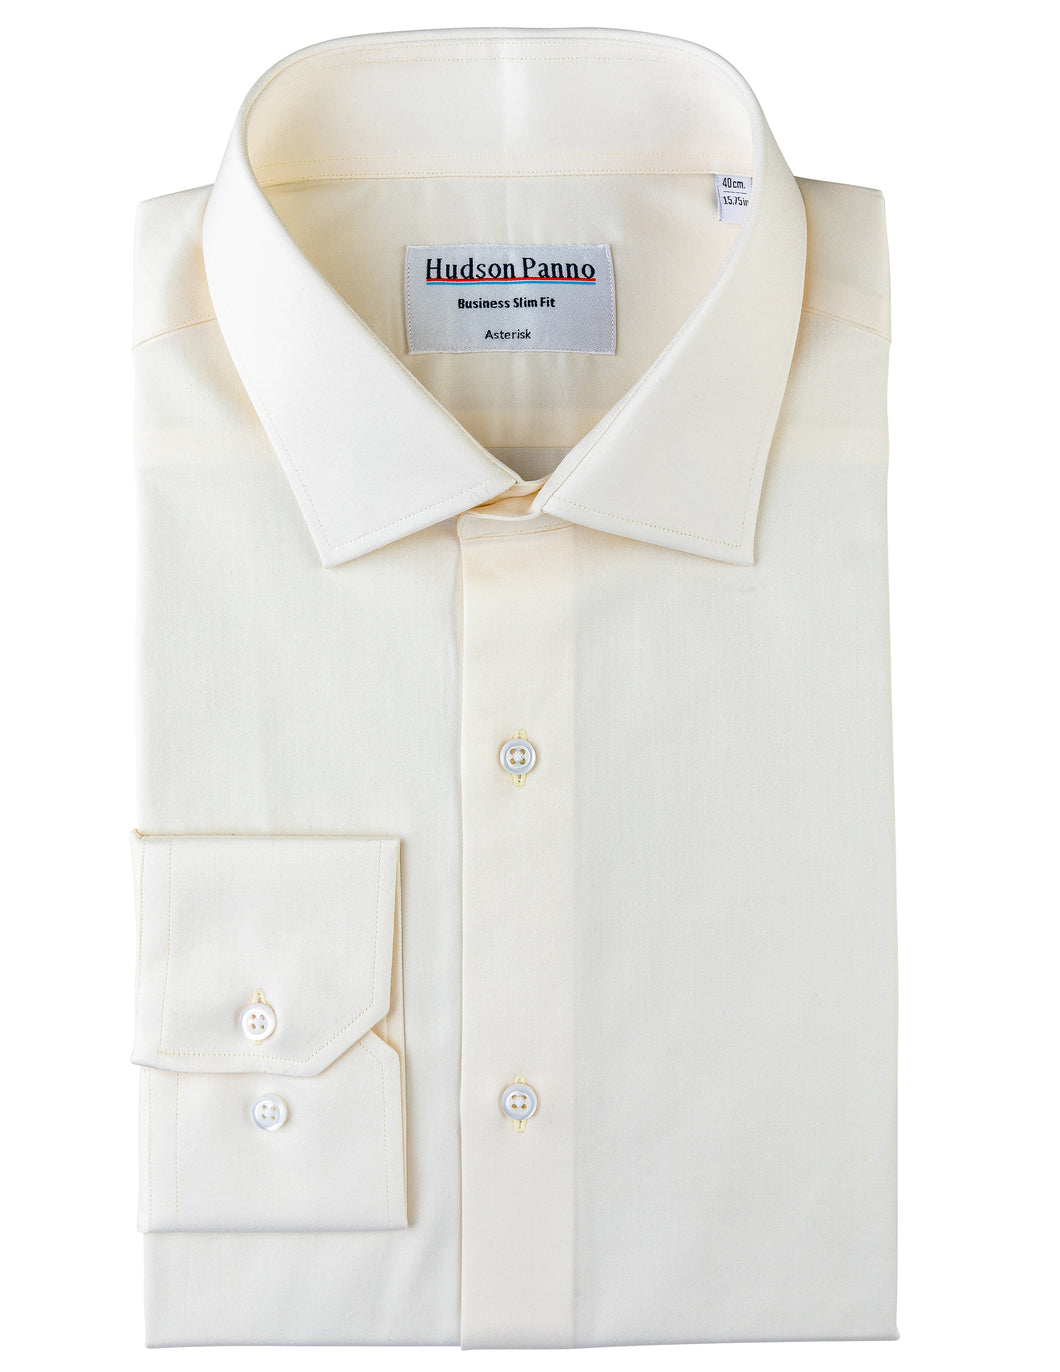 CREAM FINE COTTON SHIRT